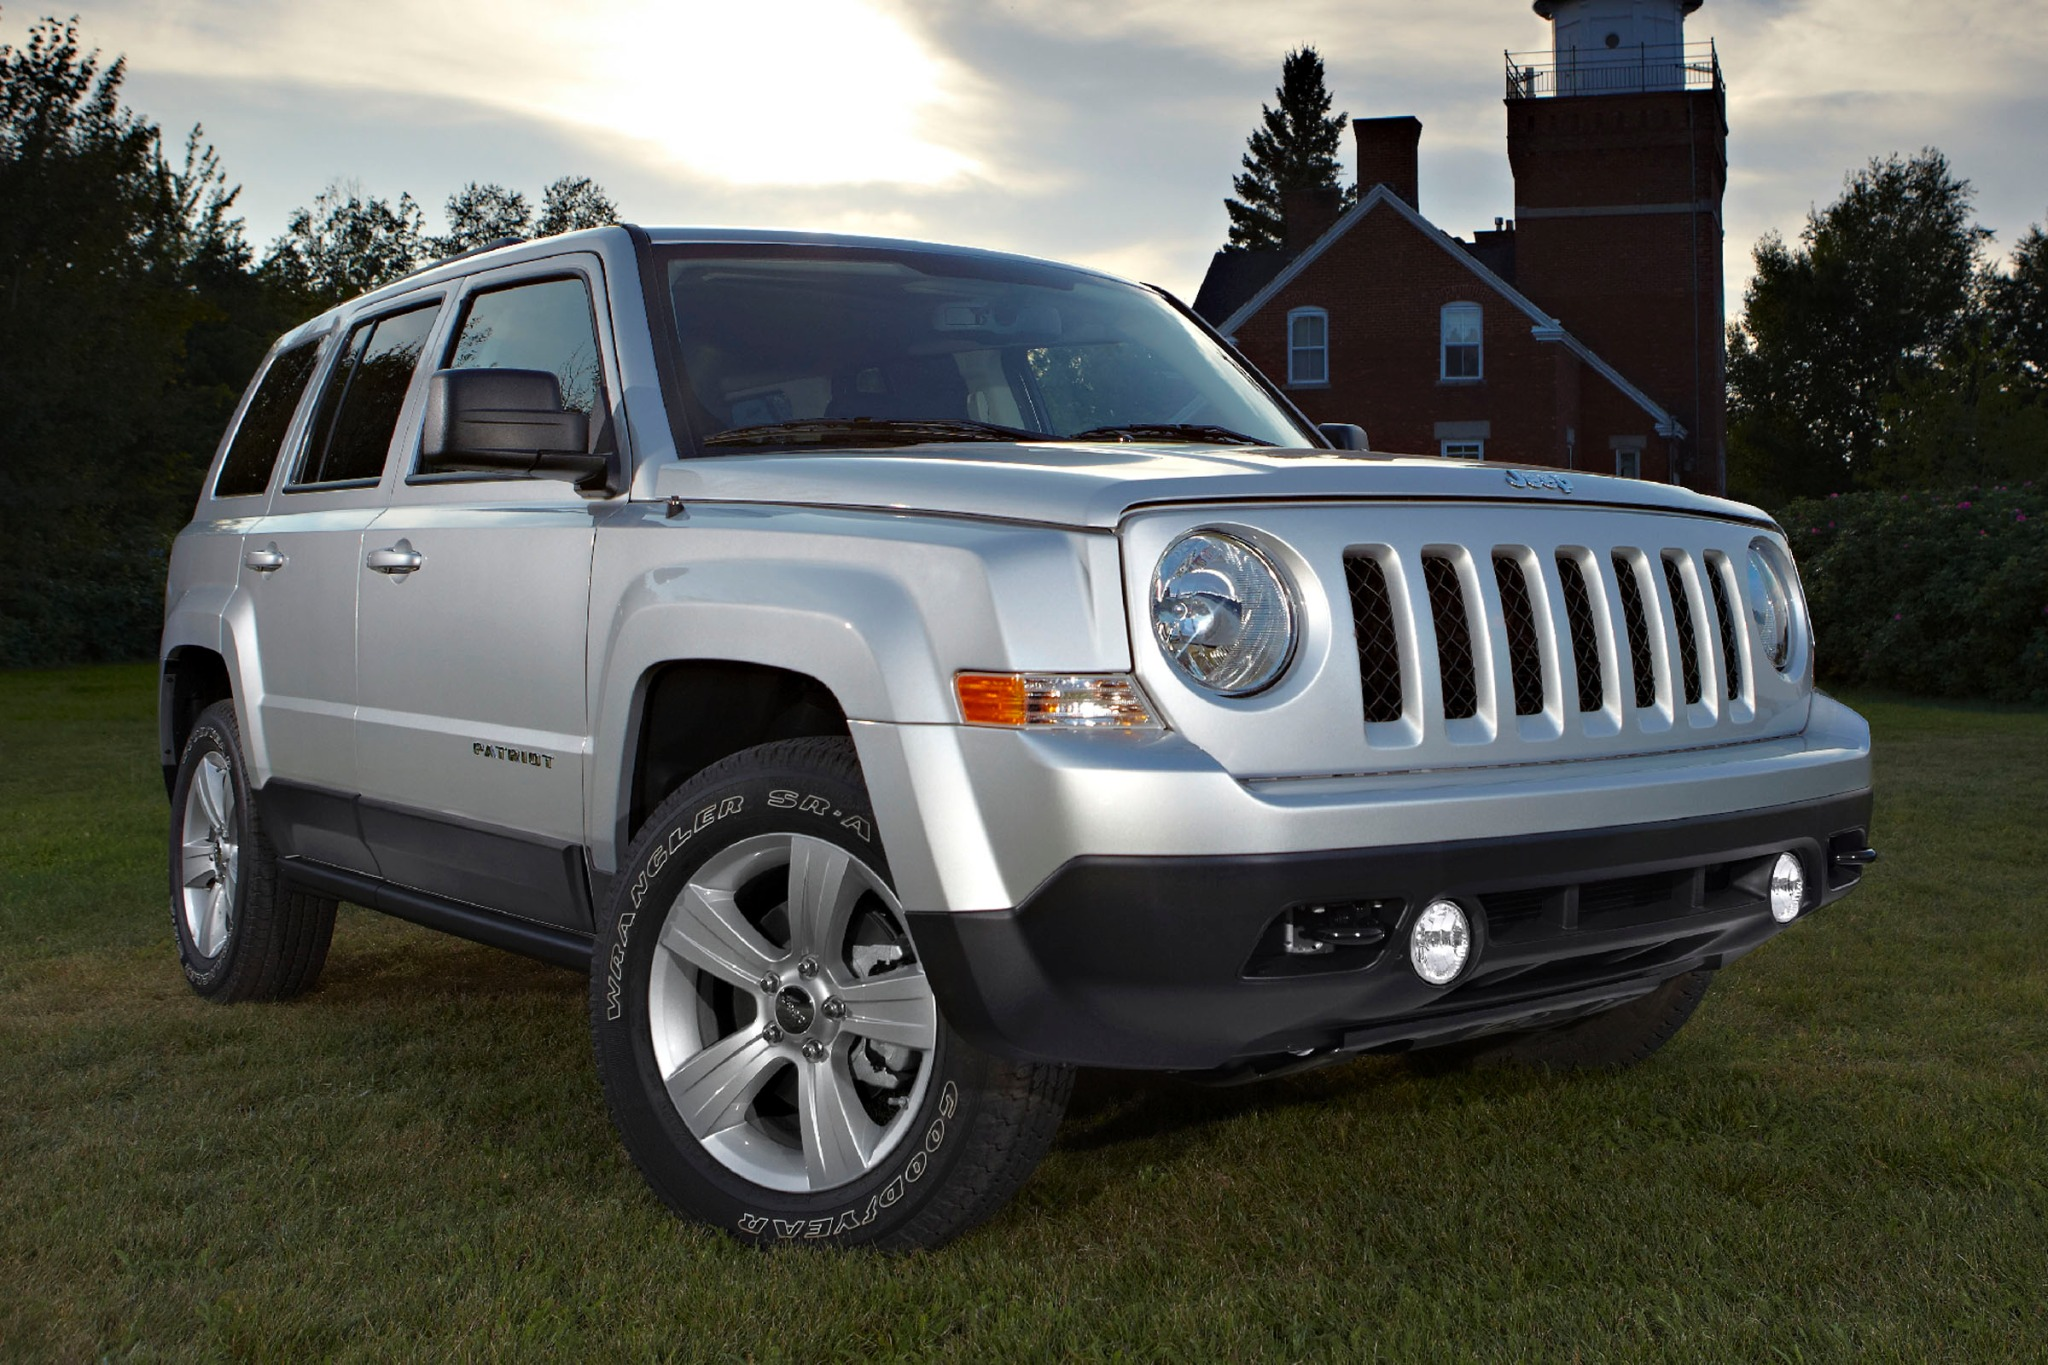 2012 Jeep Patriot Latitud interior #2